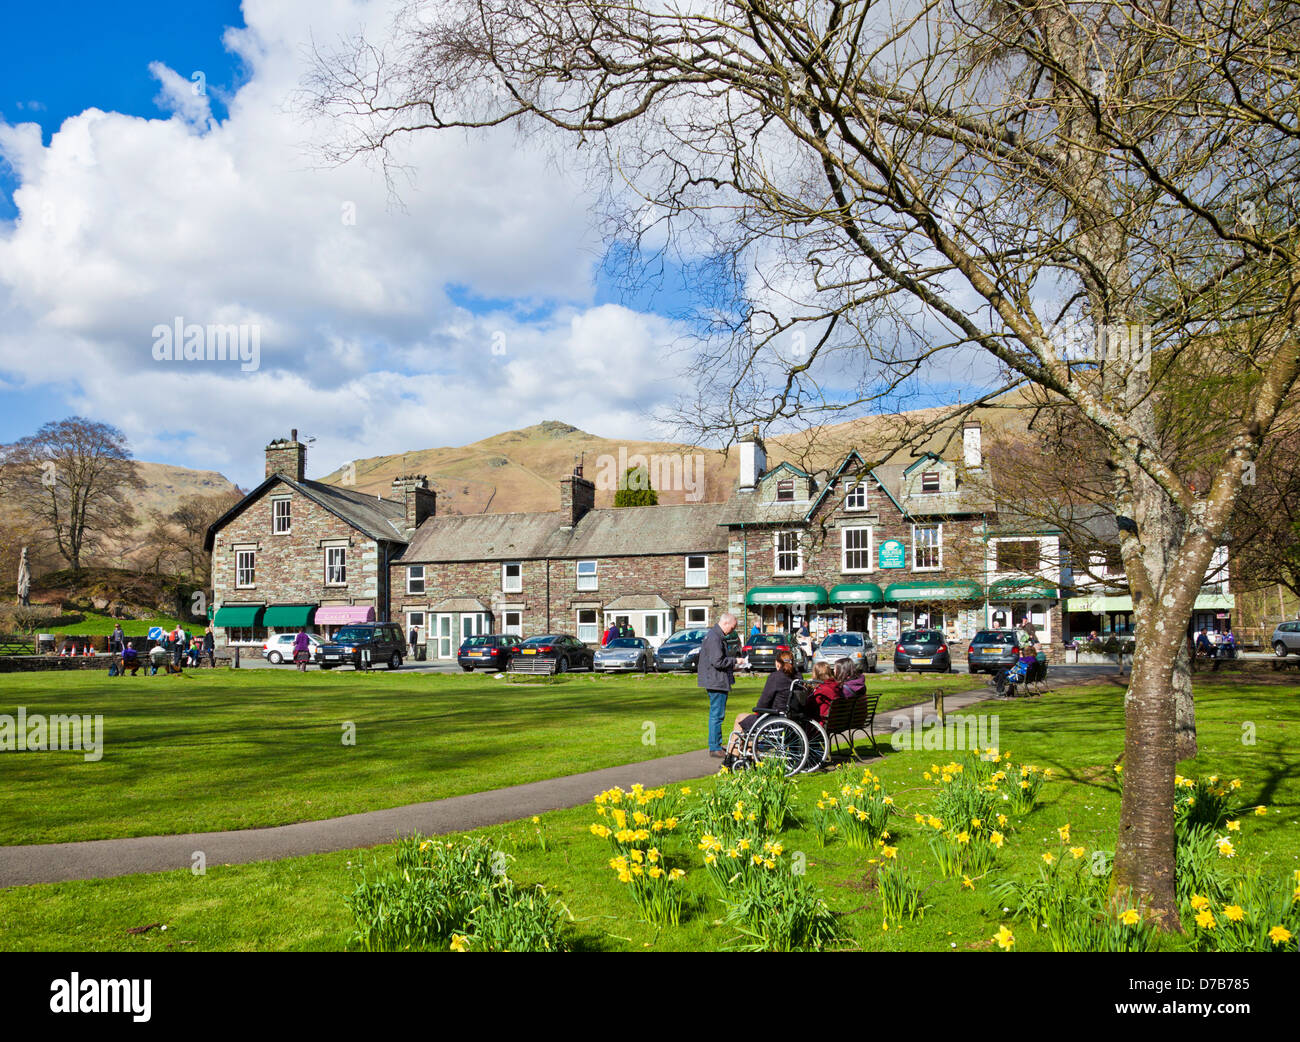 People sat on benches around the village green enjoying the spring sunshine  in Grasmere Cumbria England UK GB EU - Stock Image